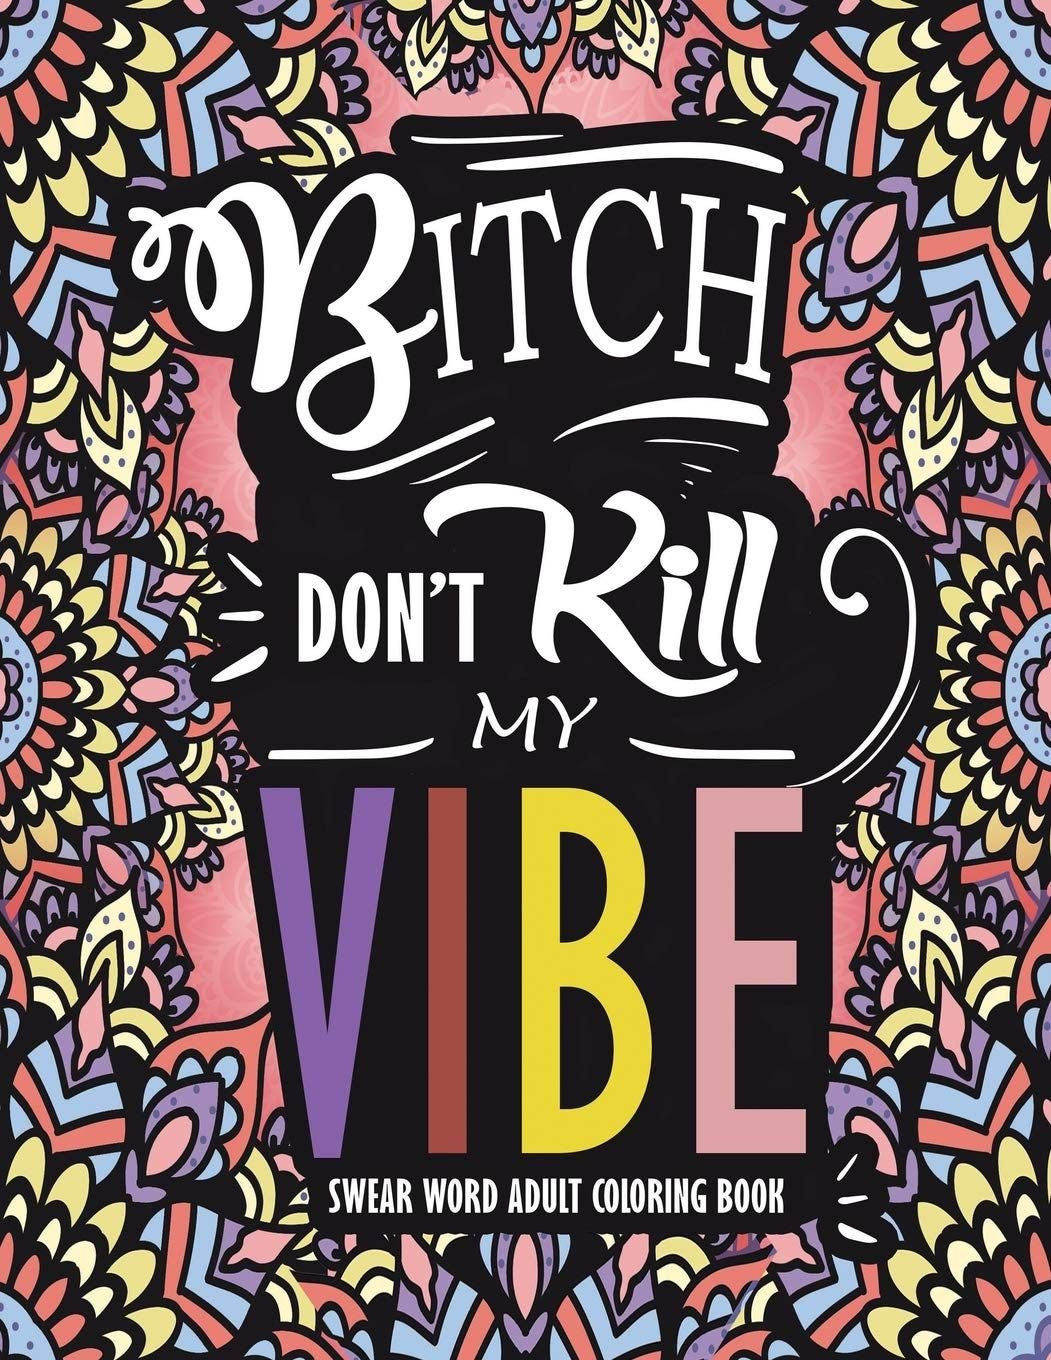 don't kill my vibe - a series of activity books for adults